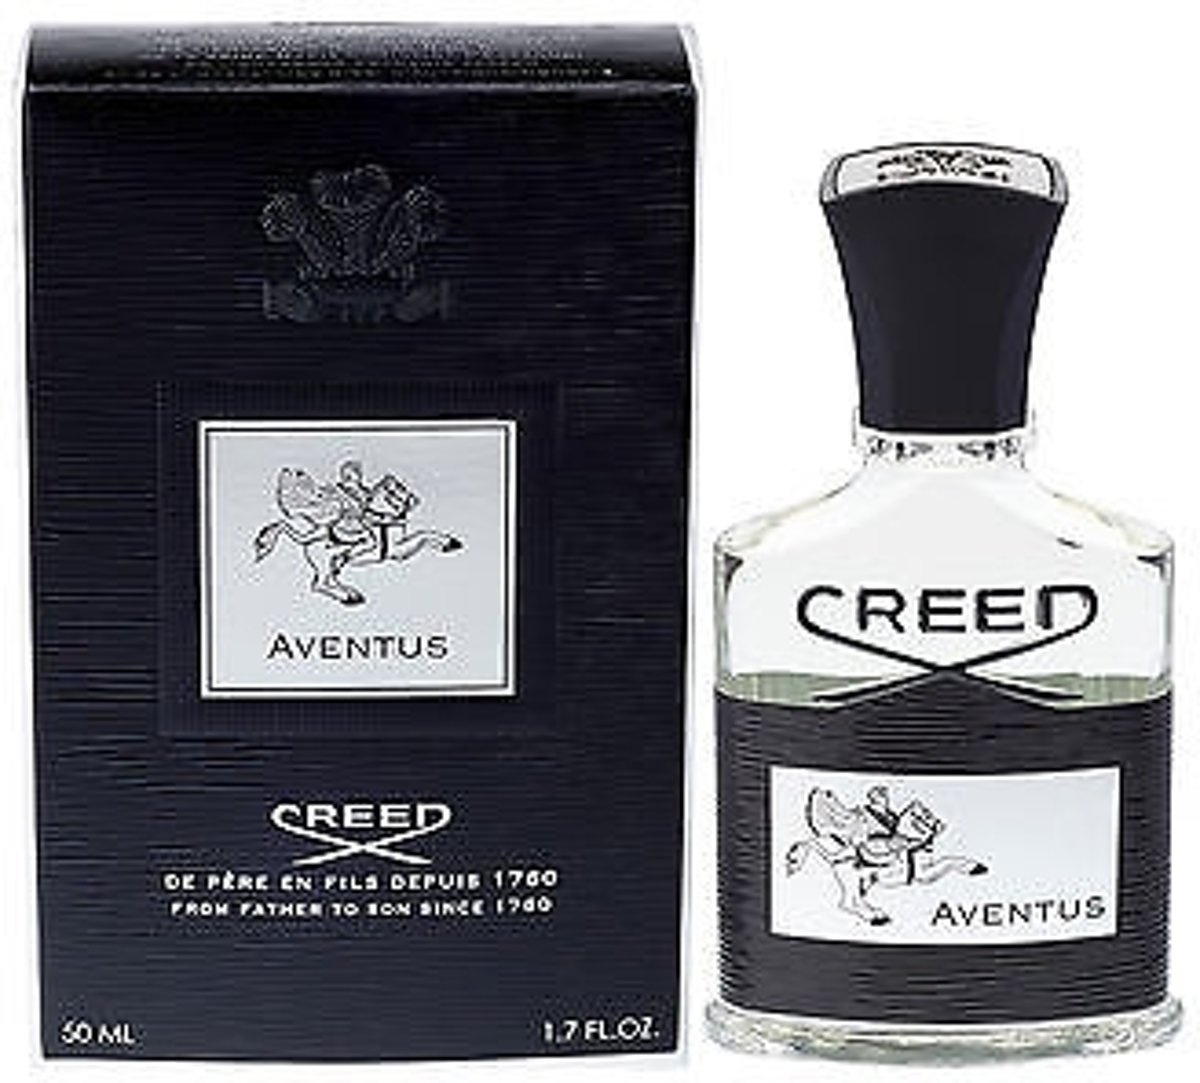 Creed - Eau de parfum - Millesime for Men Aventus - 100 ml